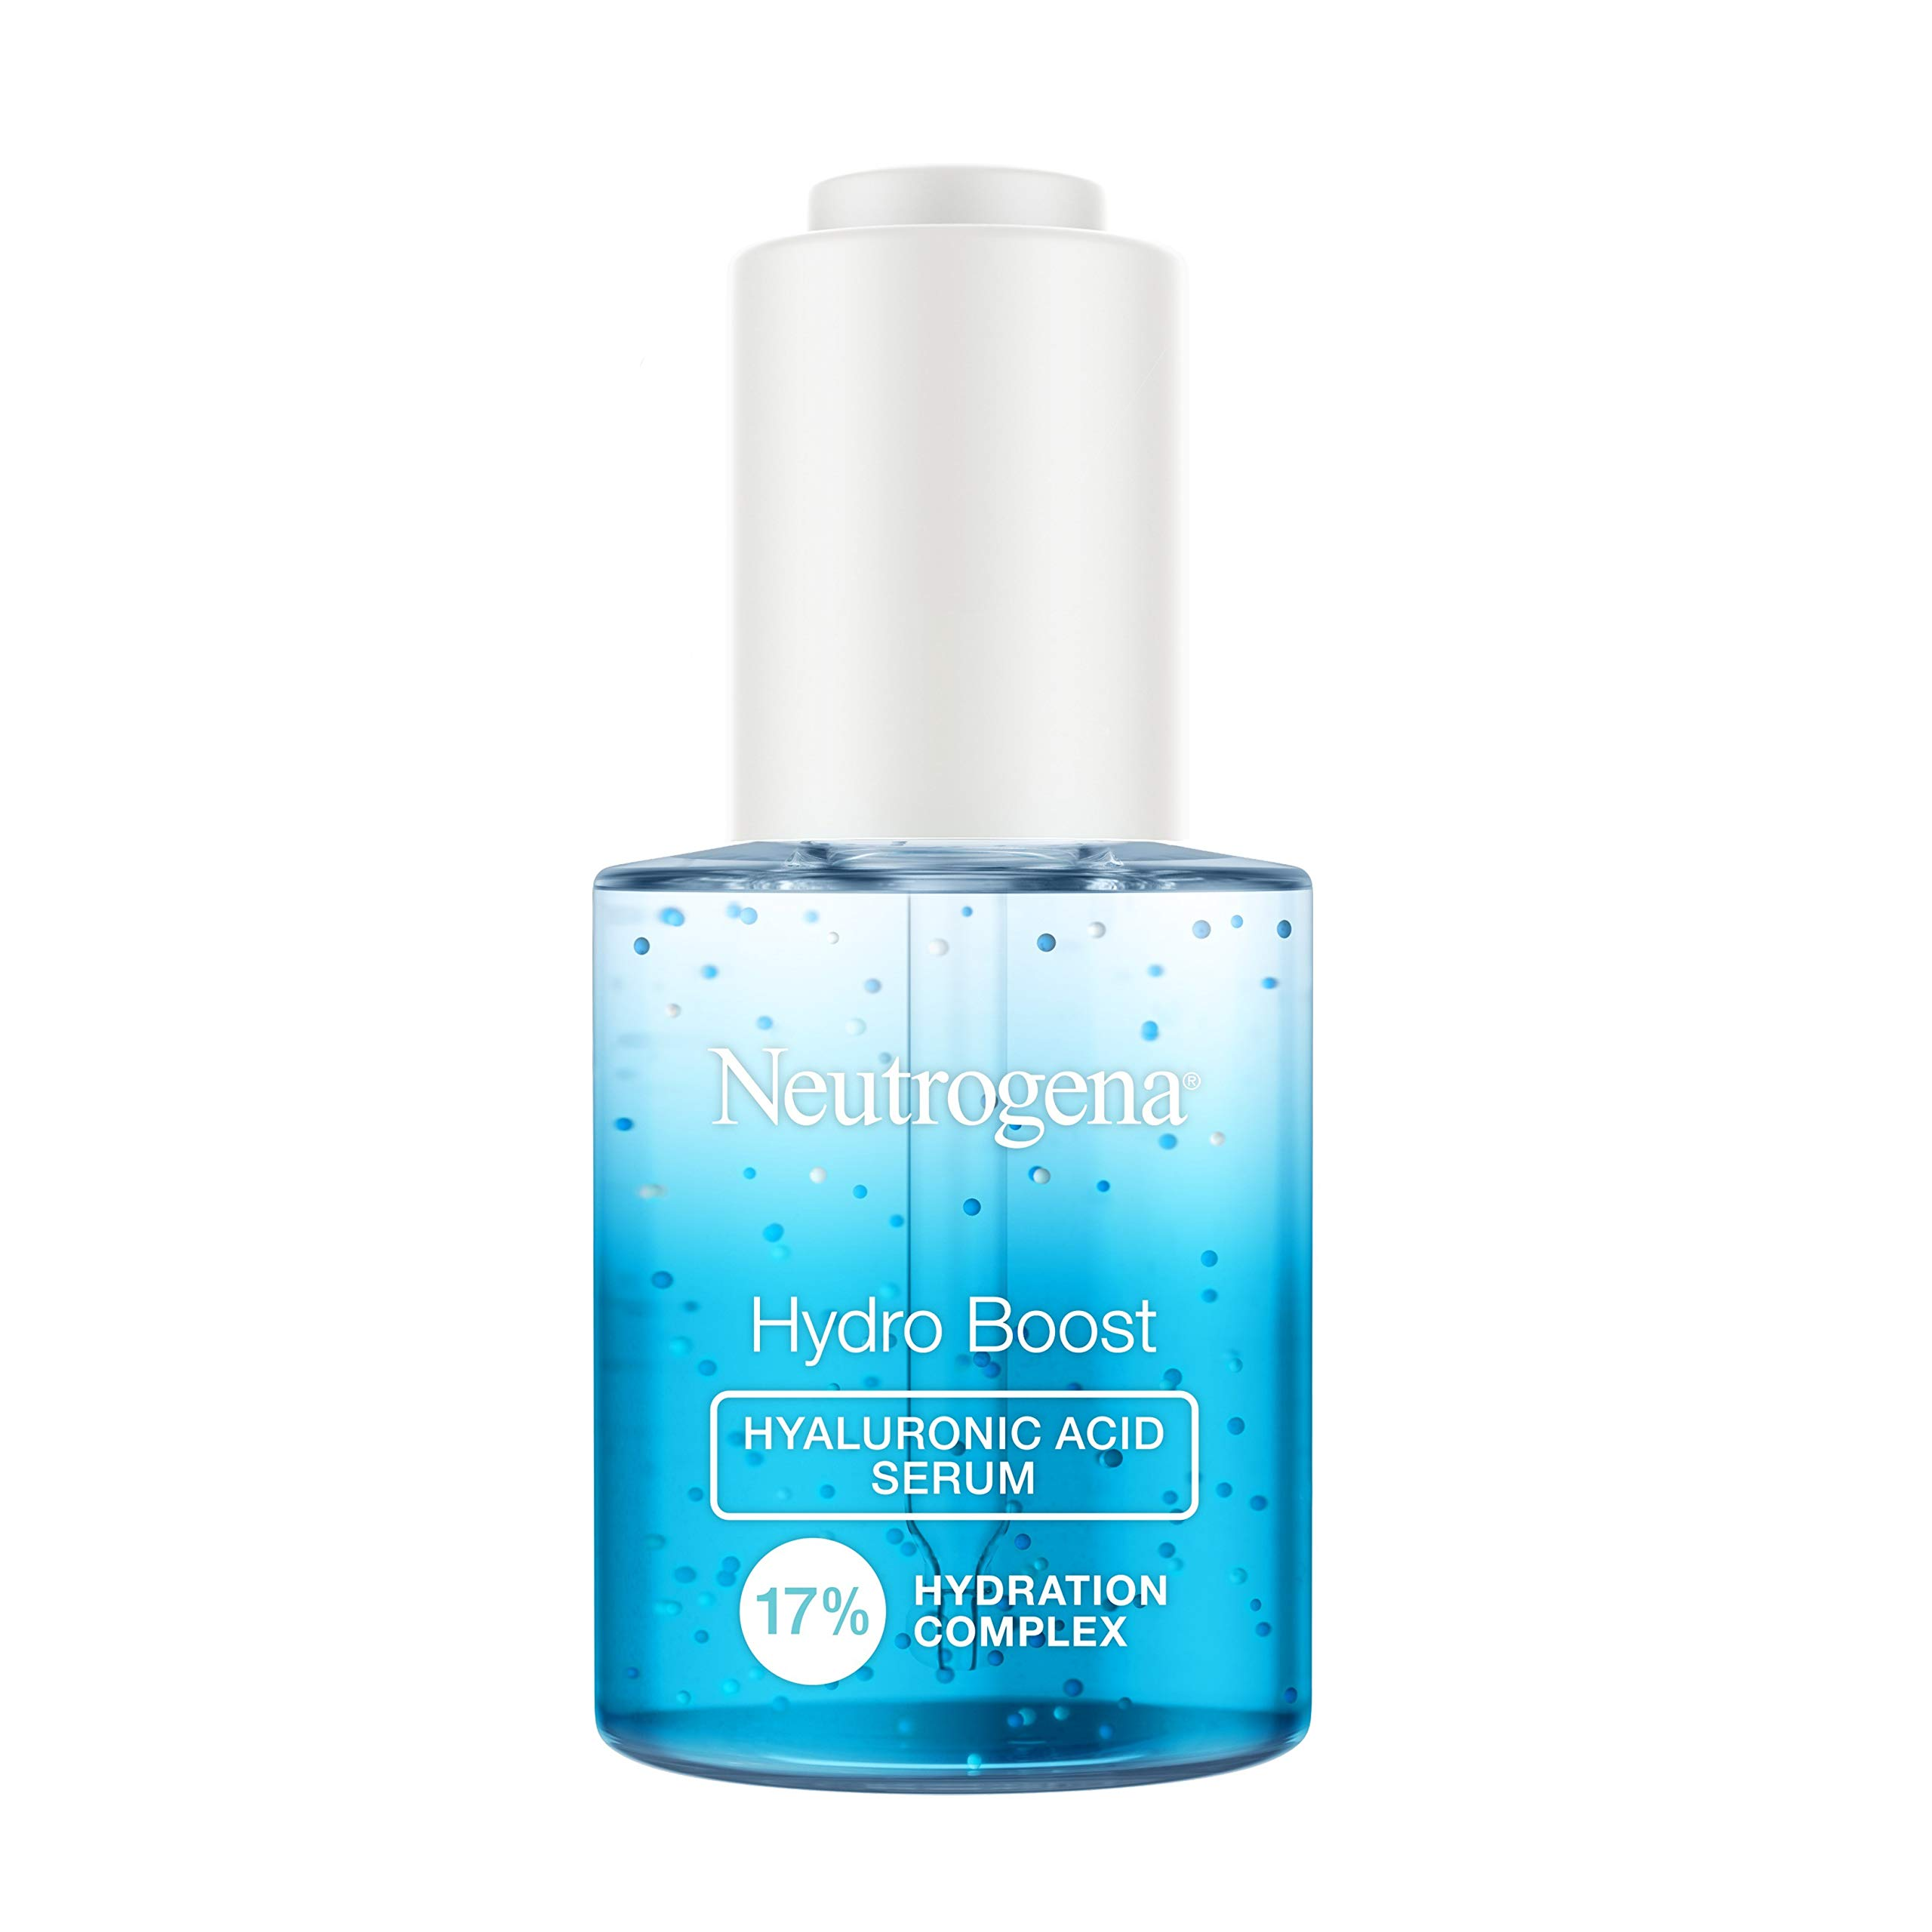 Neutrogena Hydro Boost Hyaluronic Acid Serum with 17% Hydration Complex, Lightweight Daily Hyaluronic Acid Facial Serum for Dry Skin, Oil-Free Fragrance-Free, 1 Fl Oz